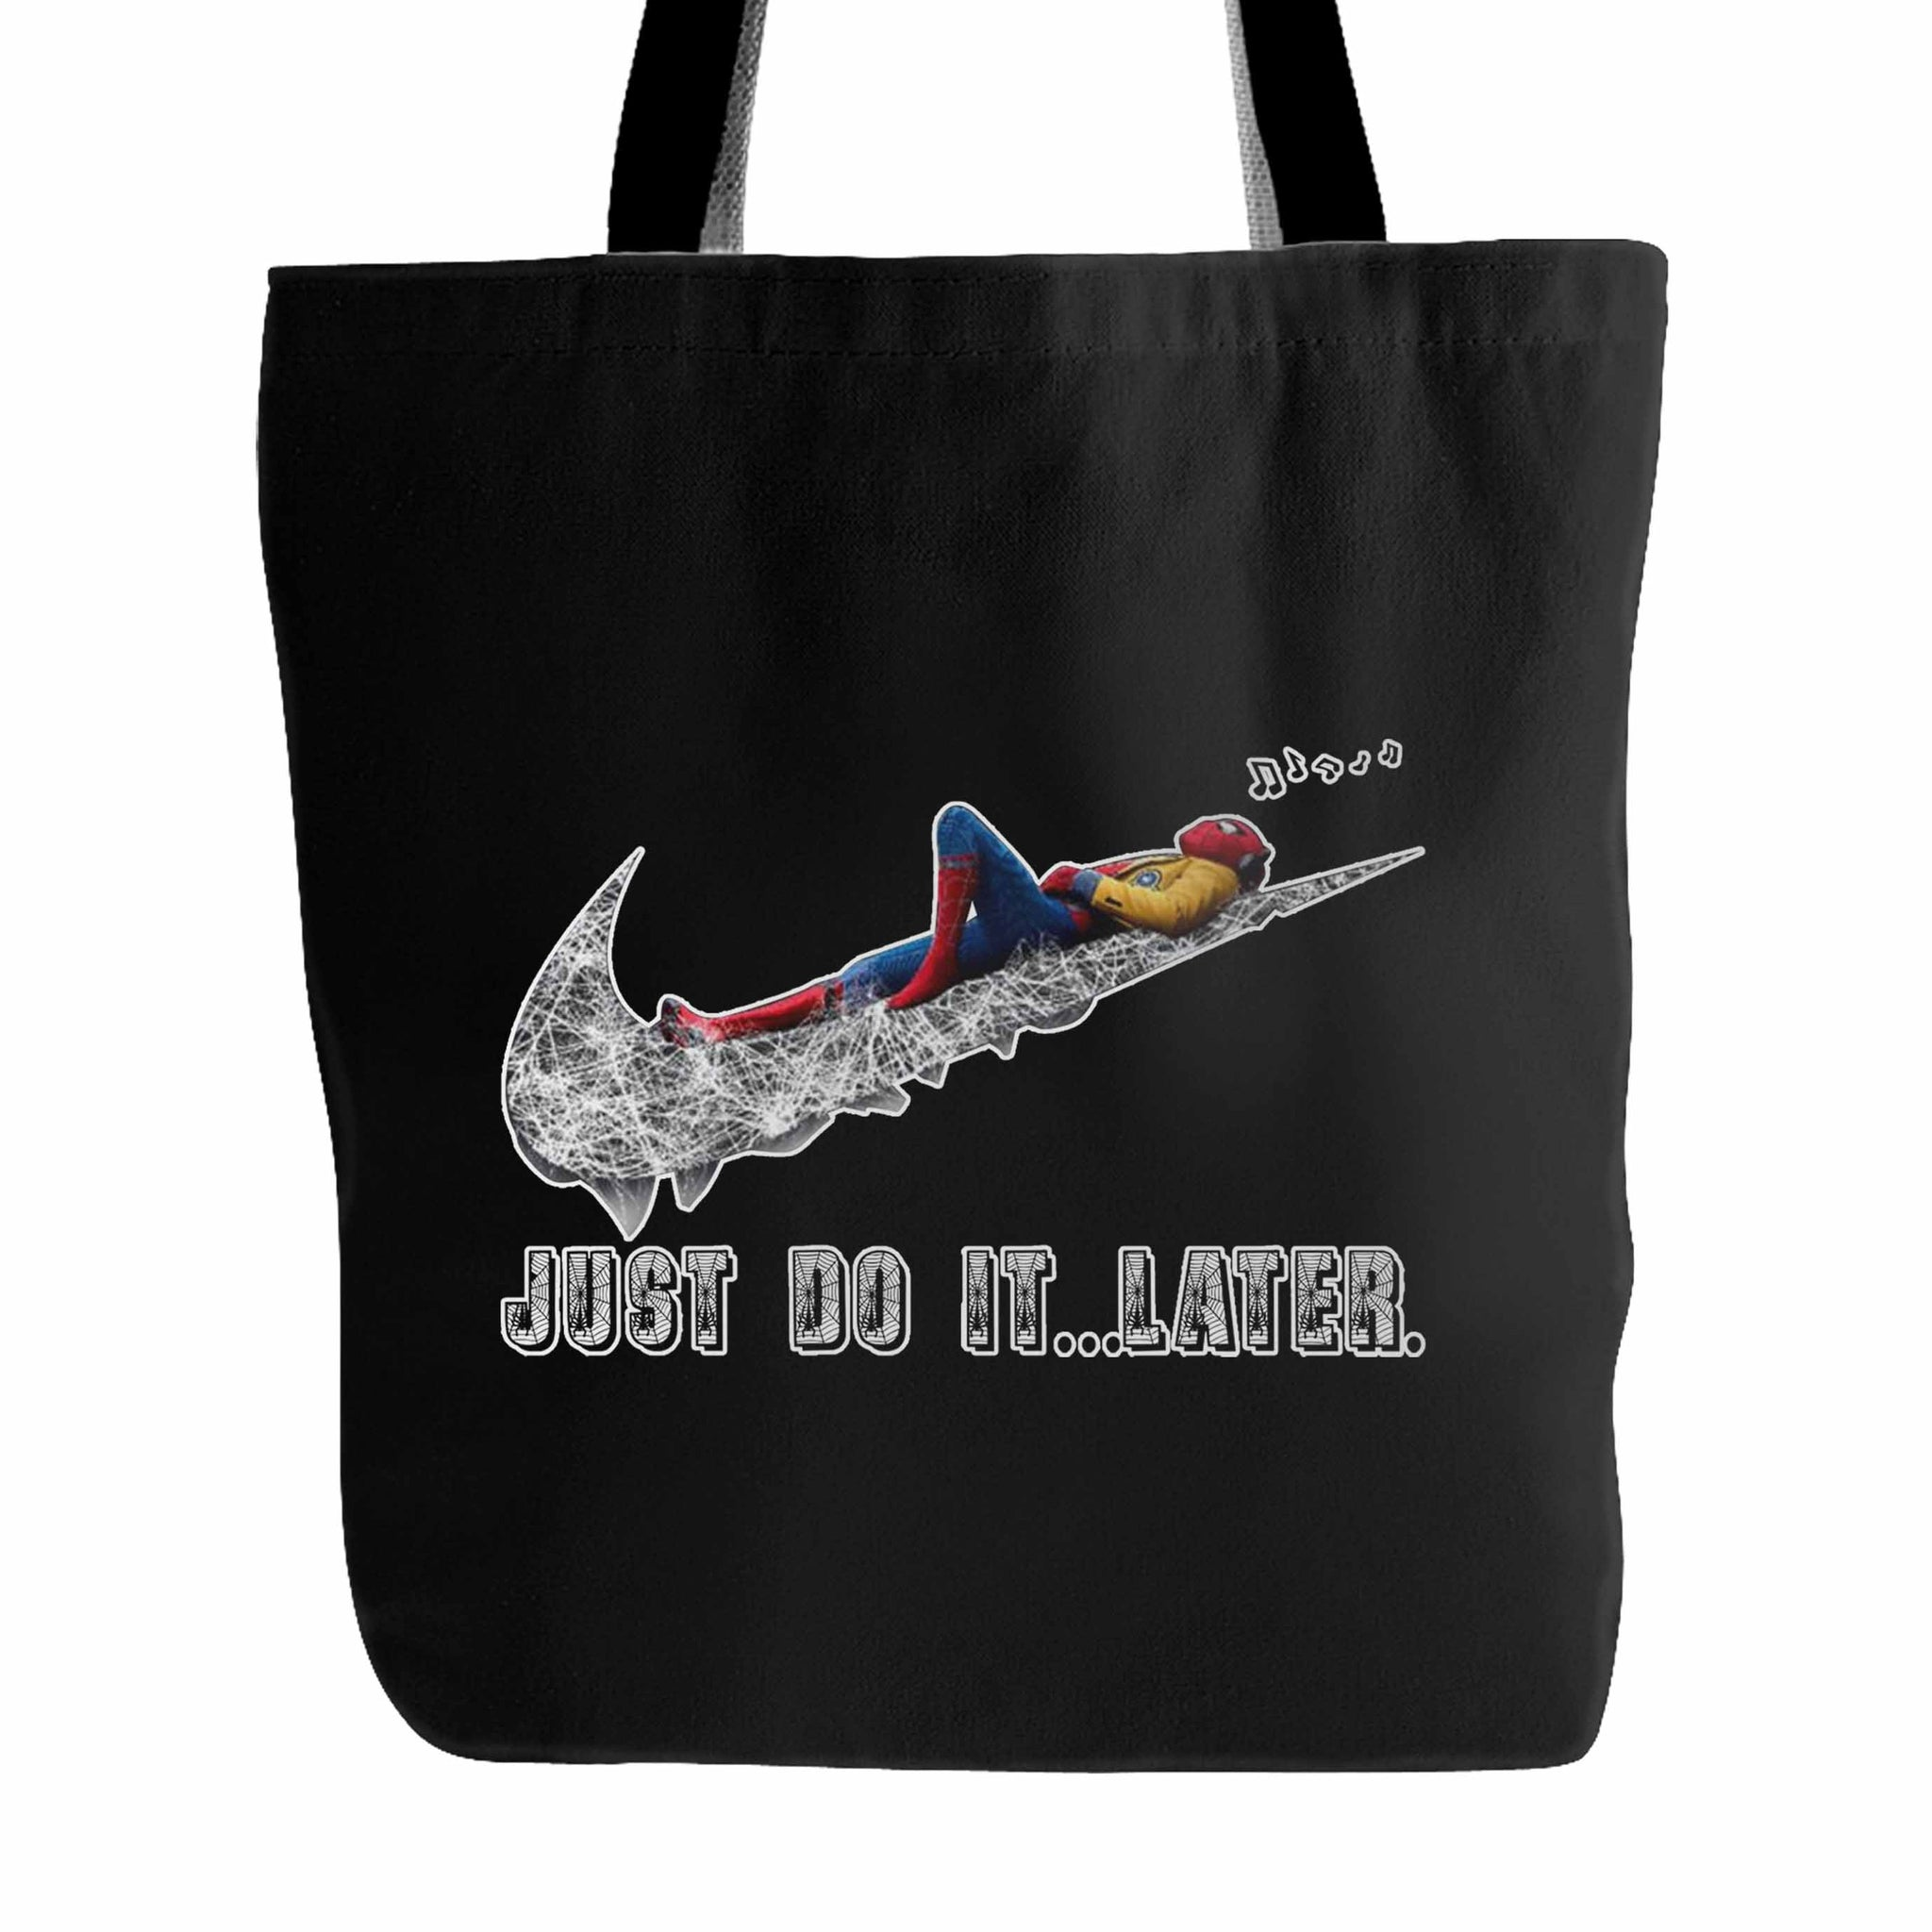 Spiderman Rilex Just Do It Later Tote Bag